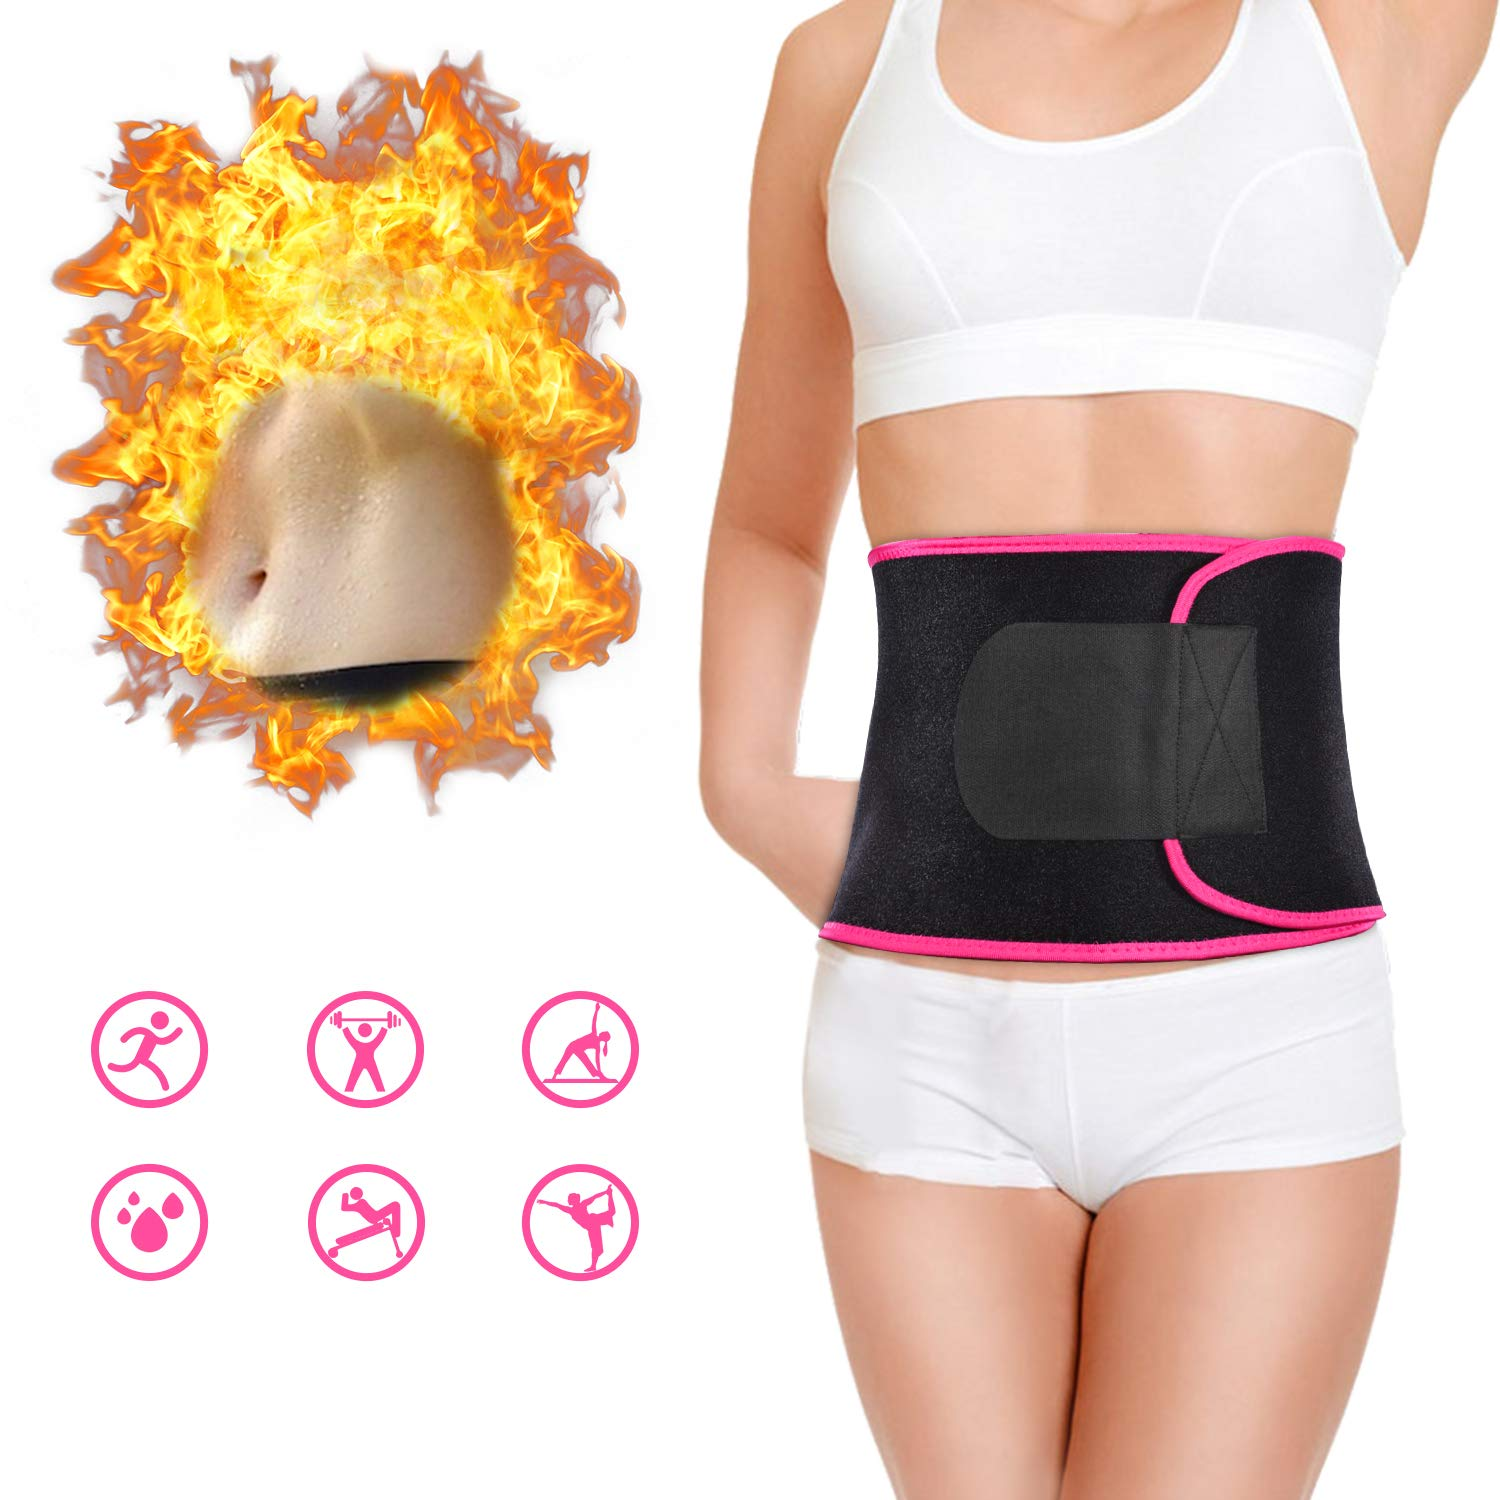 RAMHEART Waist Trimmer Belt,Exercise Fitness Waist Belt Workout Sweat Enhancer Exercise Adjustable Wrap Enjoy Sweet Abdominal Muscle & Back Support Burn Calories Increase Metabolism,Pink